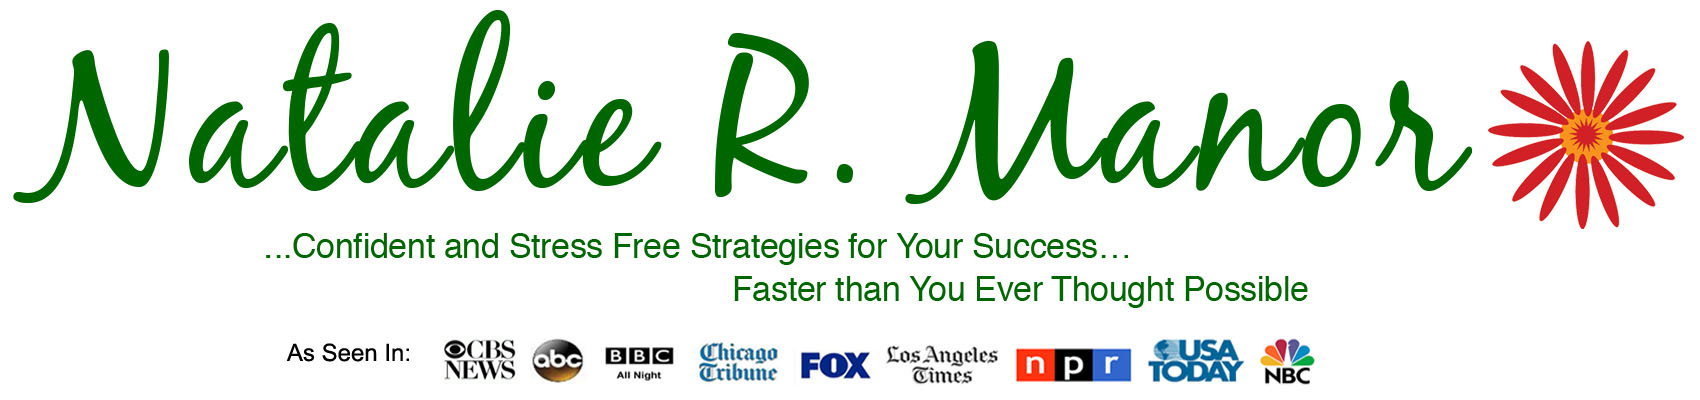 Natalie Manor   Confident and Stress Free Strategies for Your Success… Faster than You Ever Thought Possible